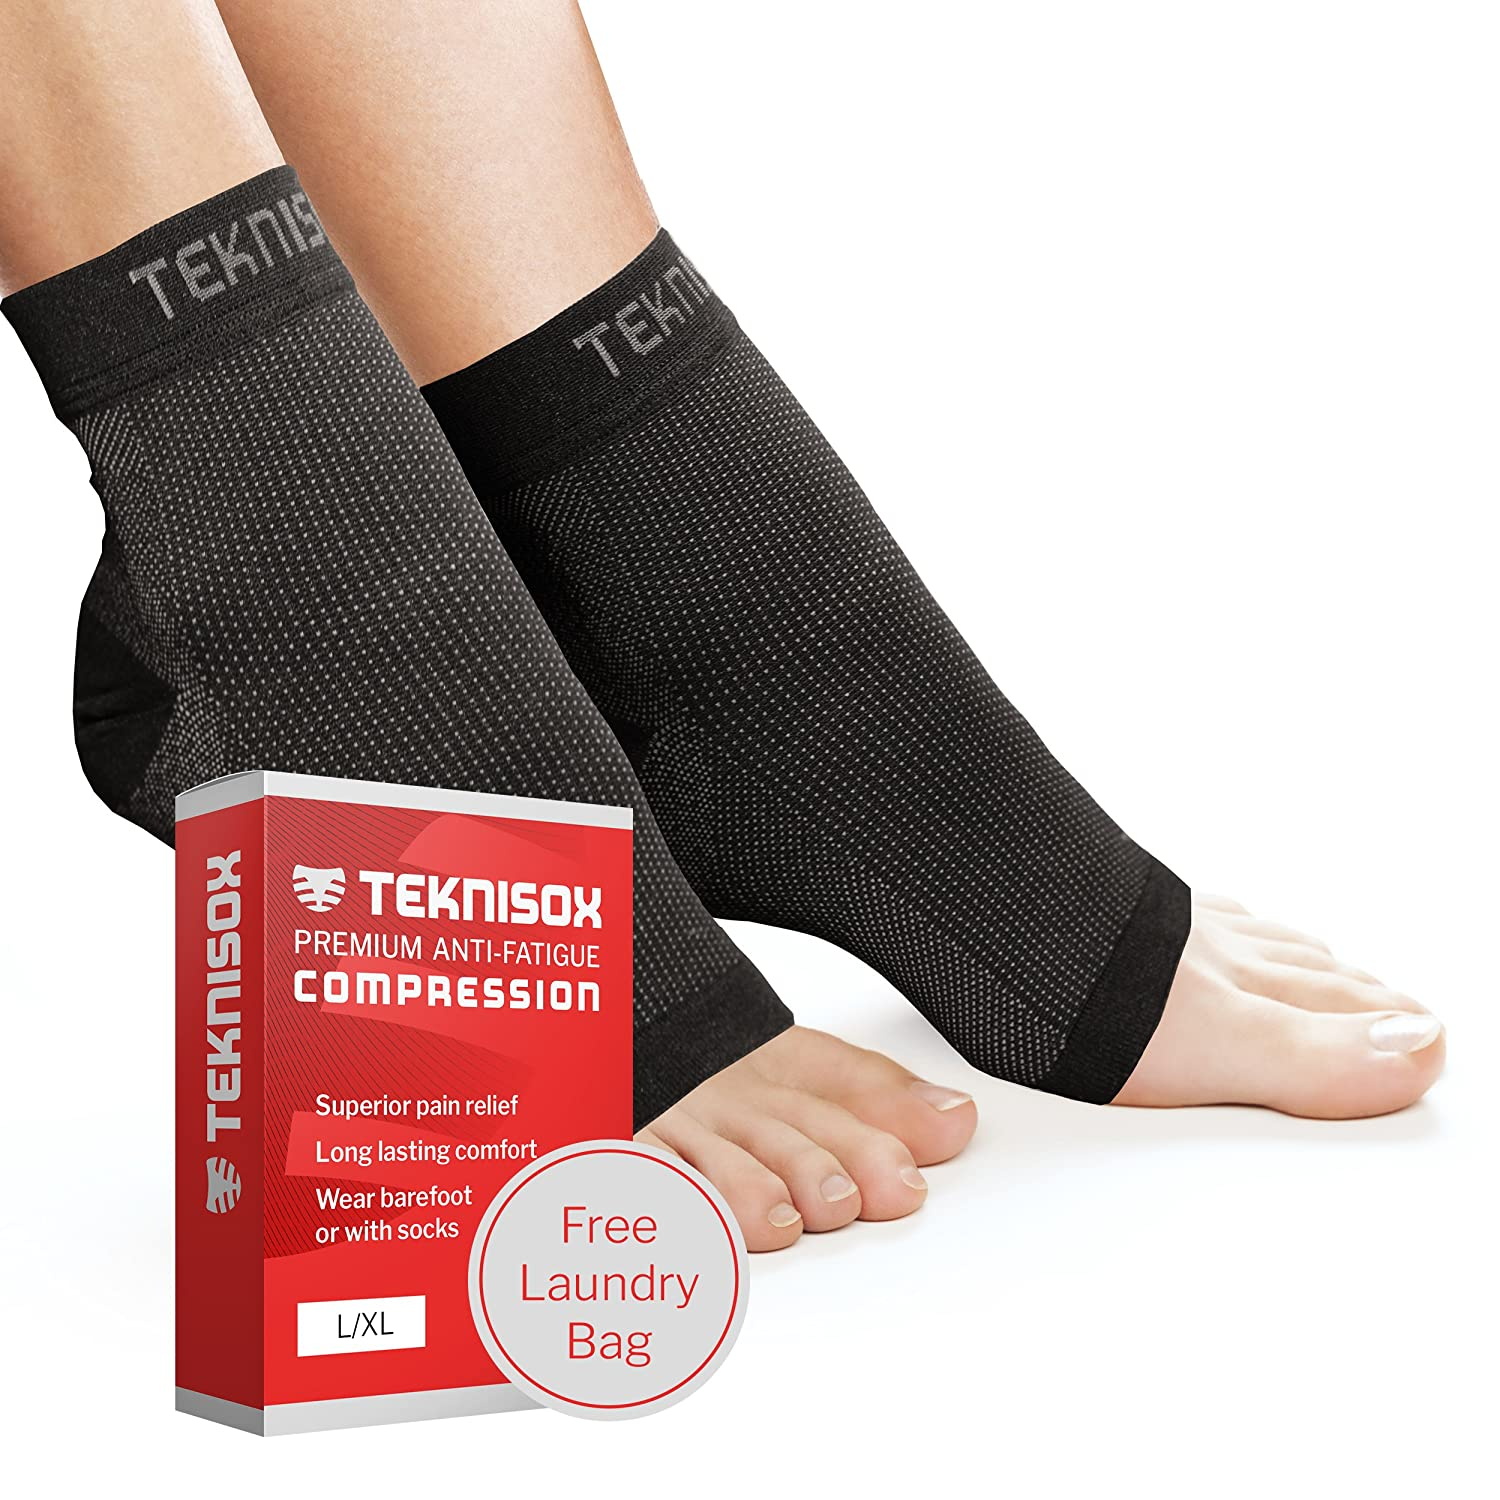 Underwear & Sleepwears Just Women Men Unisex Open Toe Compression Knee Leg Relief Pain Support Socks Relief Therapeutic Anti-fatigue Compression Socks We Take Customers As Our Gods